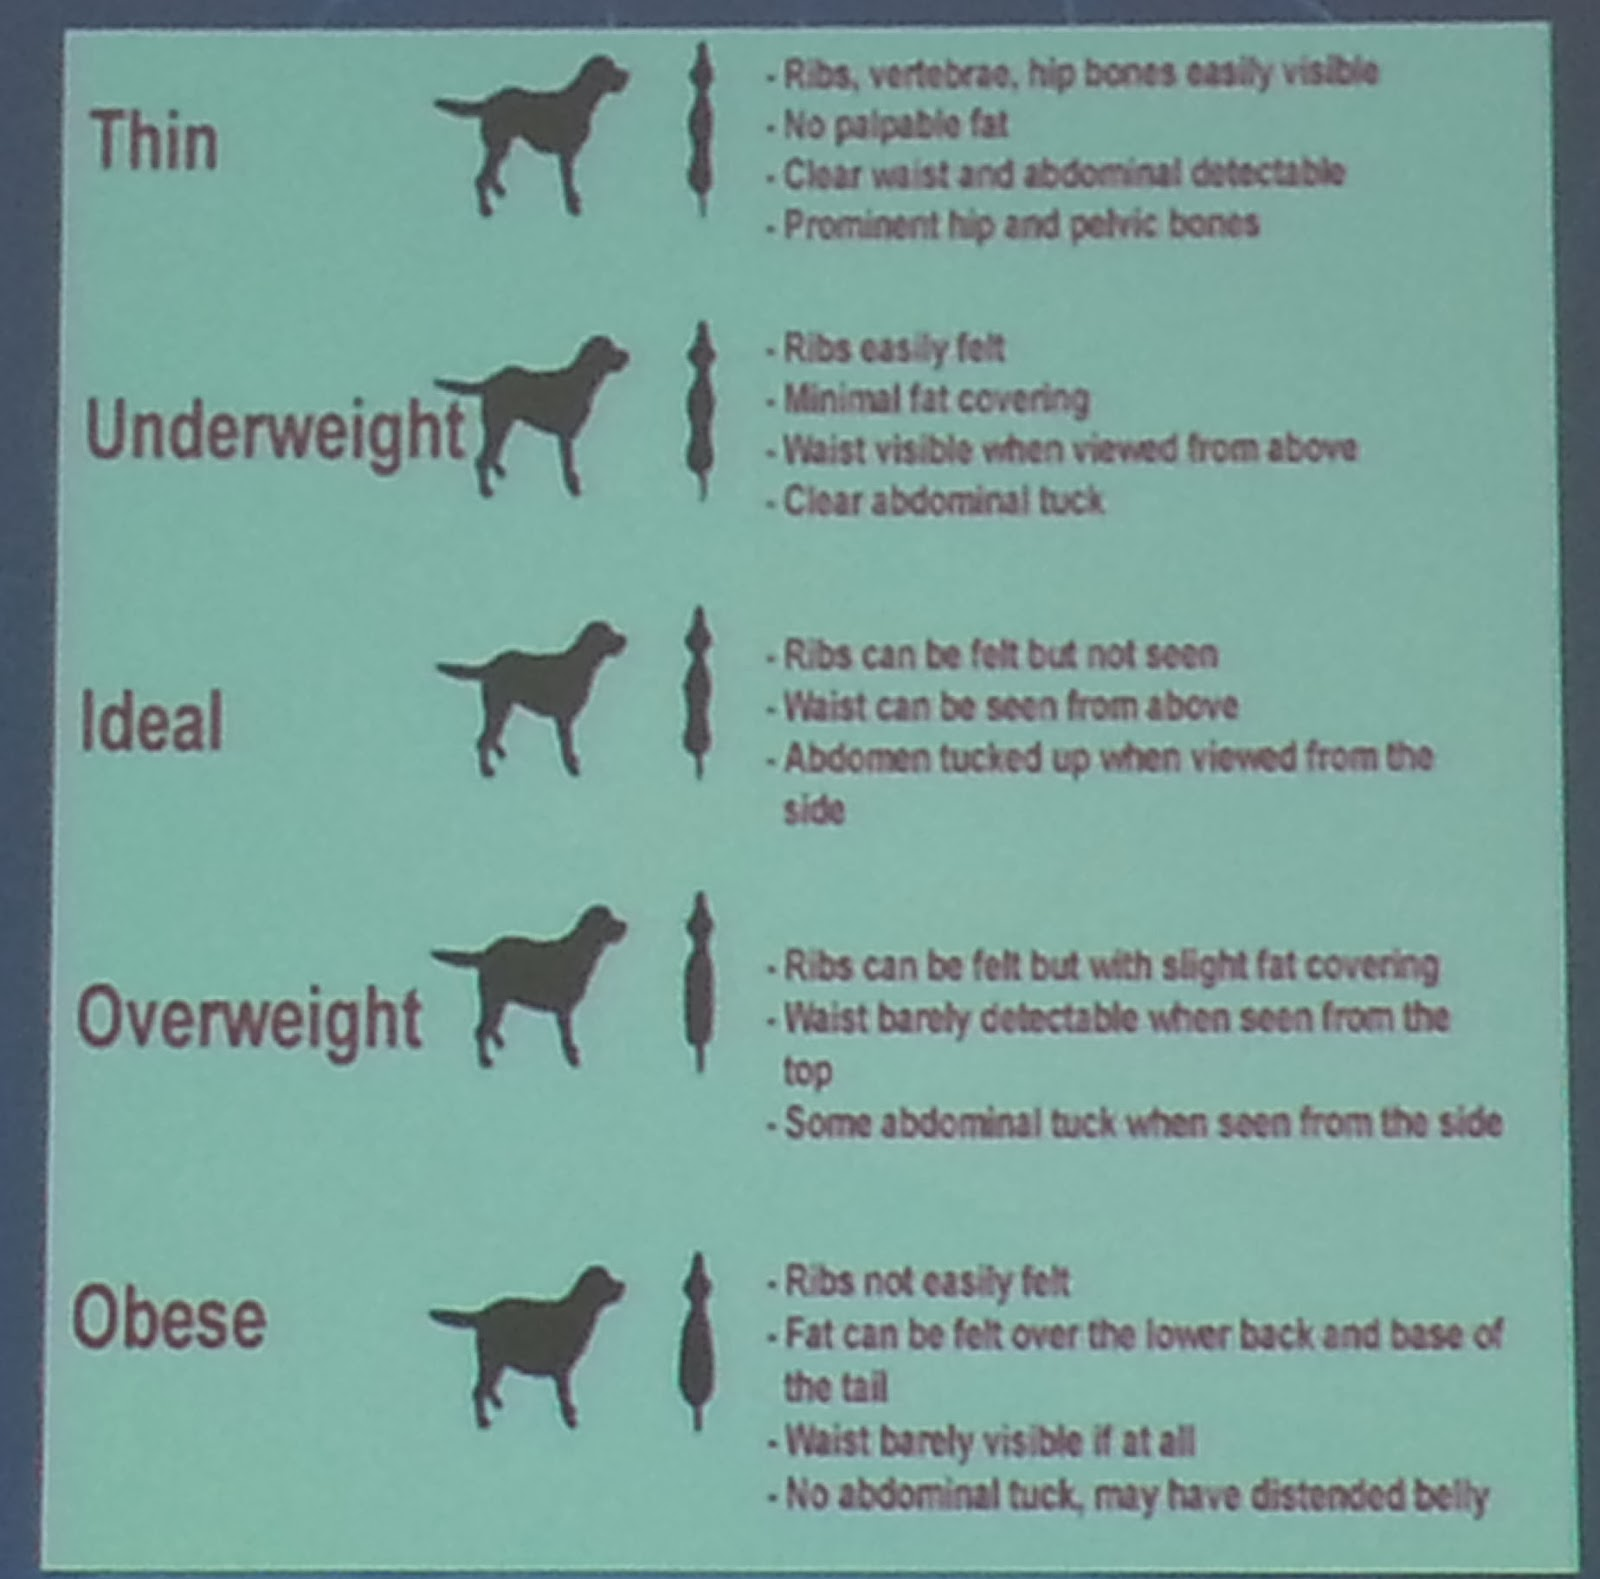 If You Are Wondering If Your Dog Is A Healthy Weight, Please Look At This  Chart And Compare Your Dog With The Pictures On The Chart.